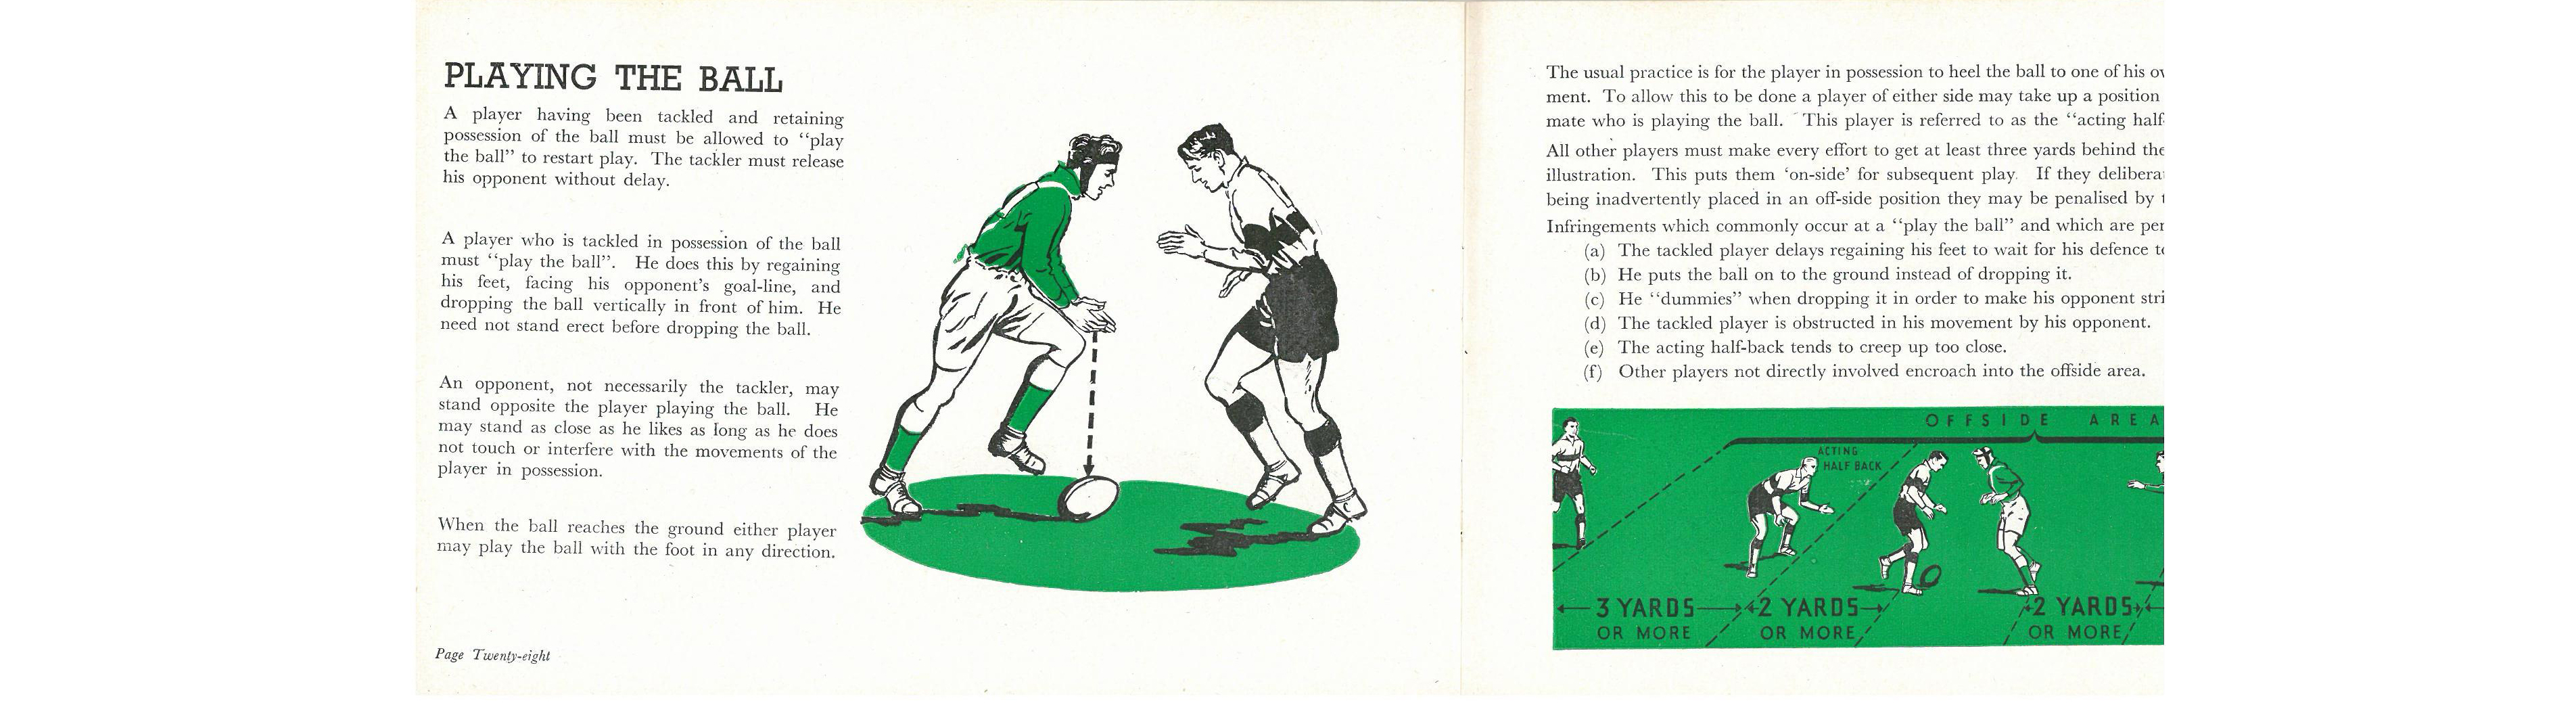 Laws of the game illustrated booklet